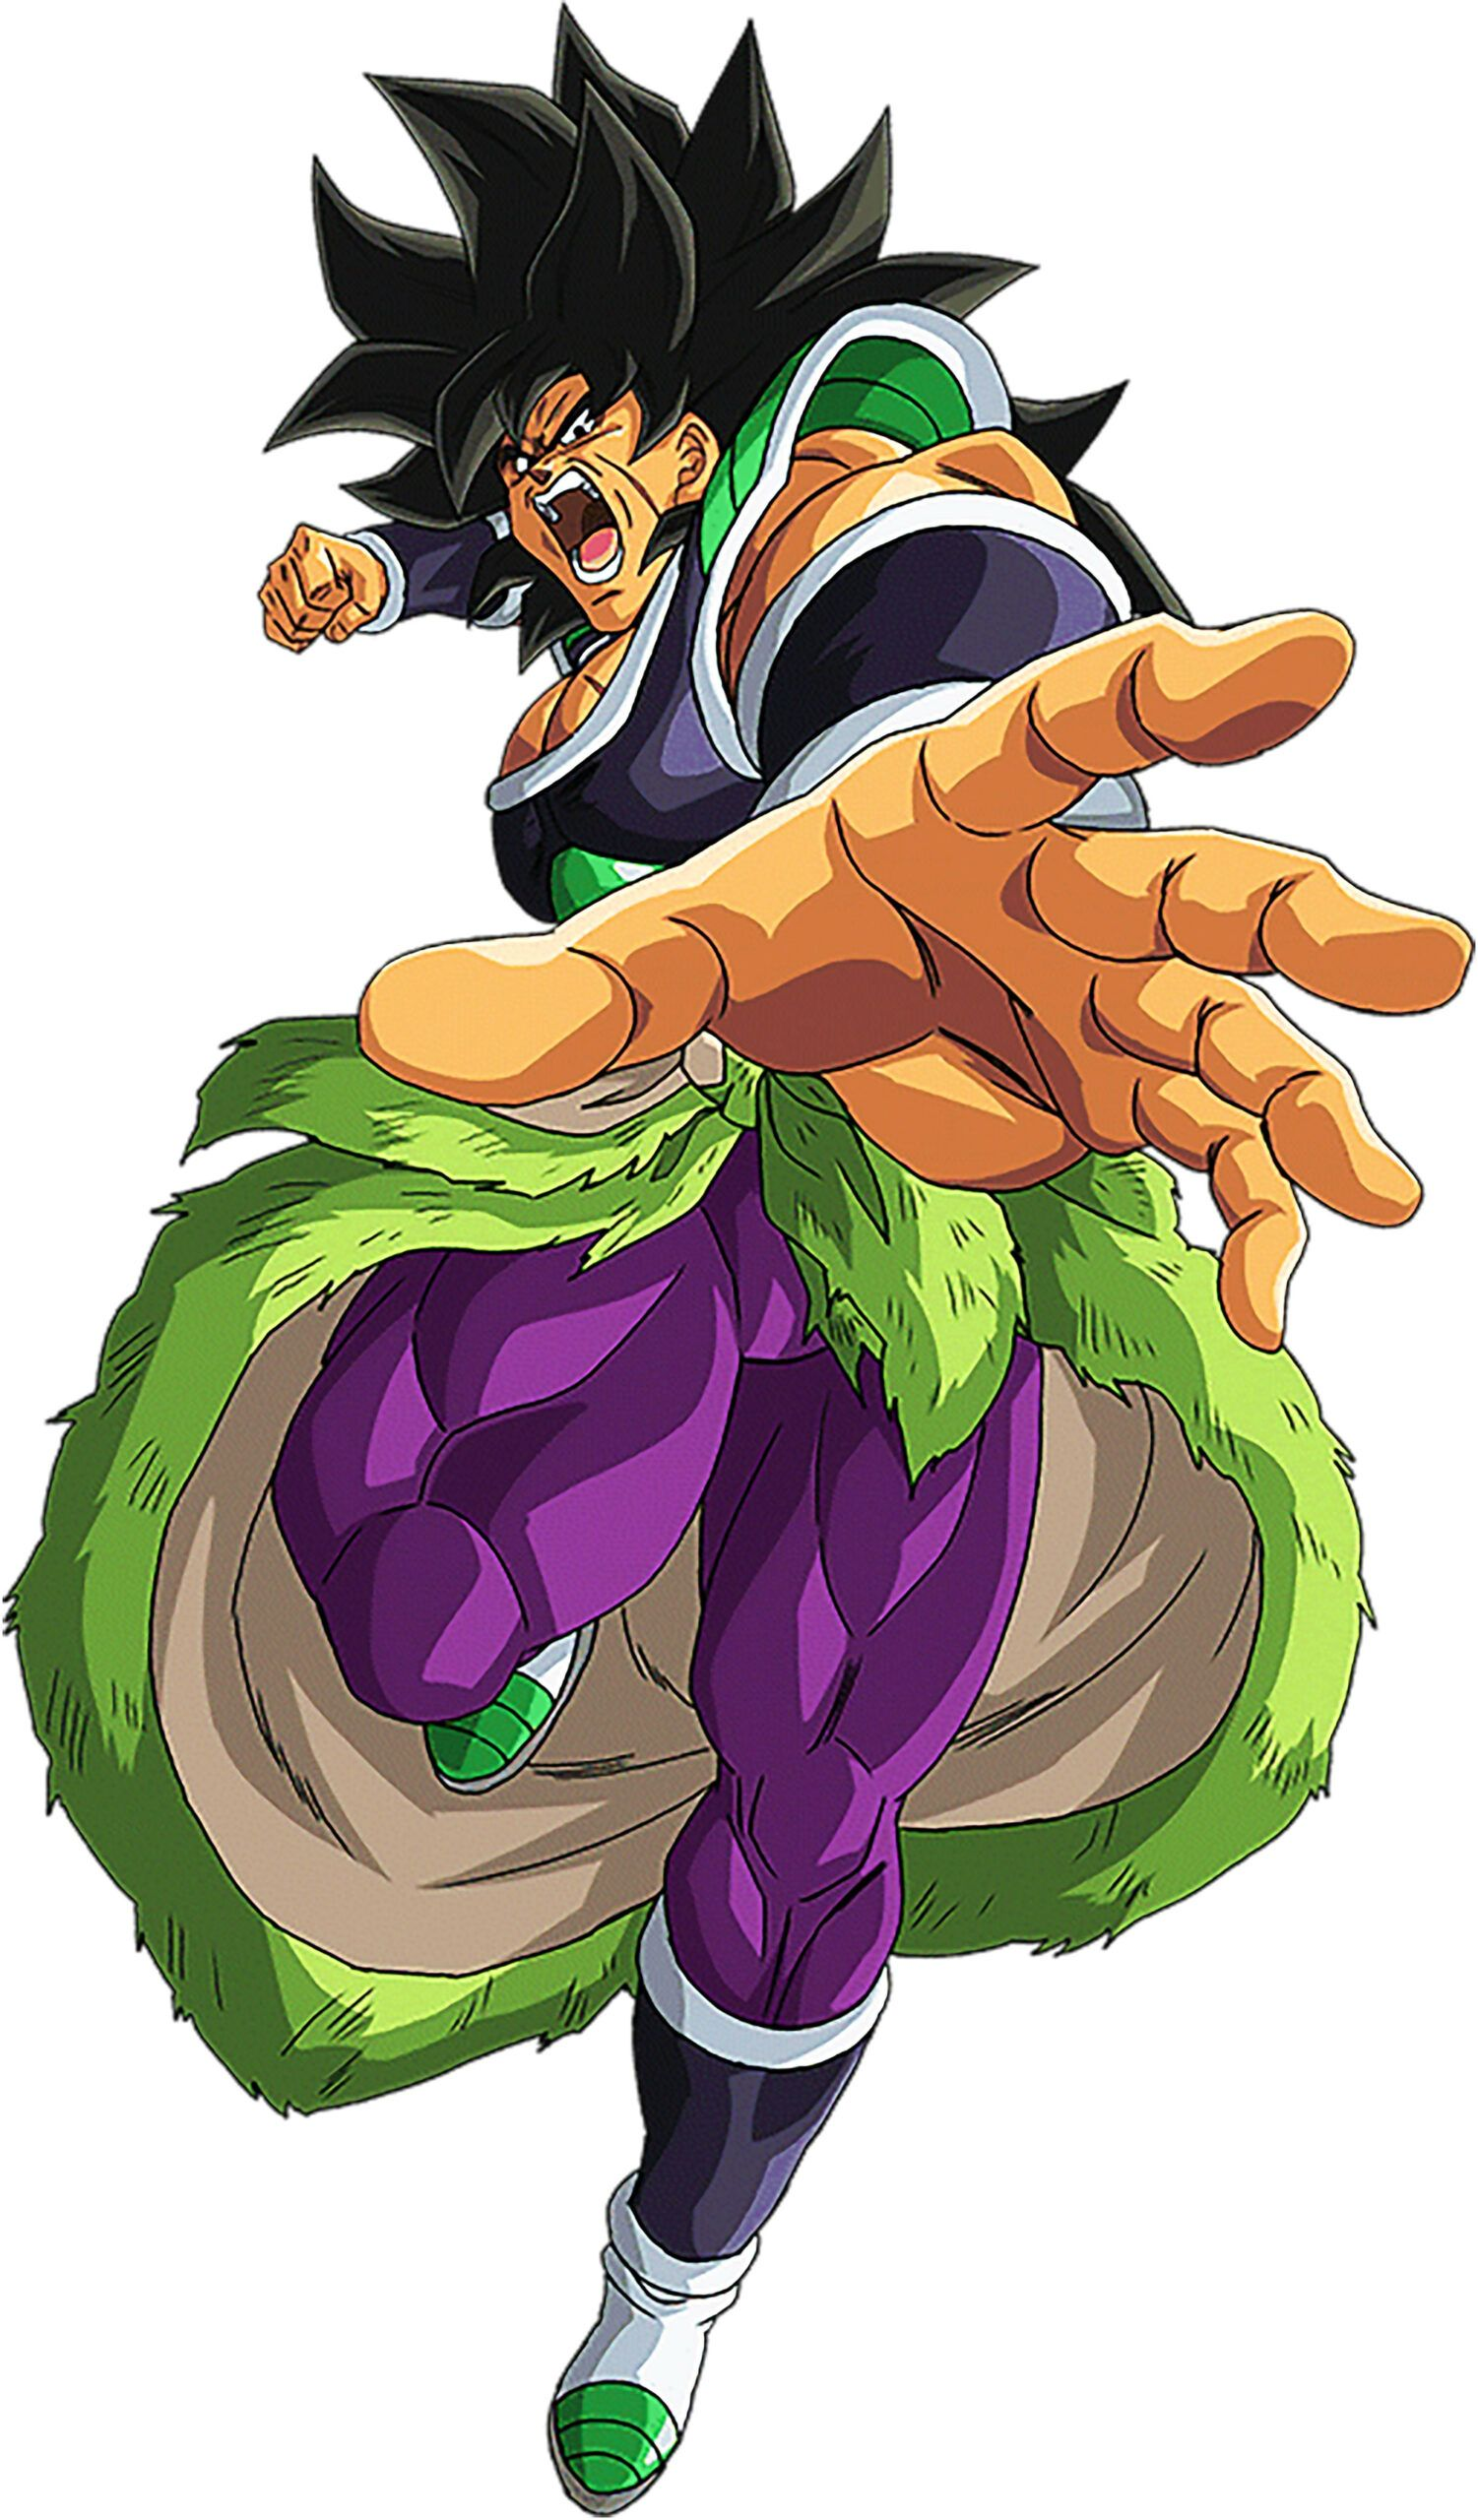 Luxury Base Form Broly Trying To Punch Dragon ball super